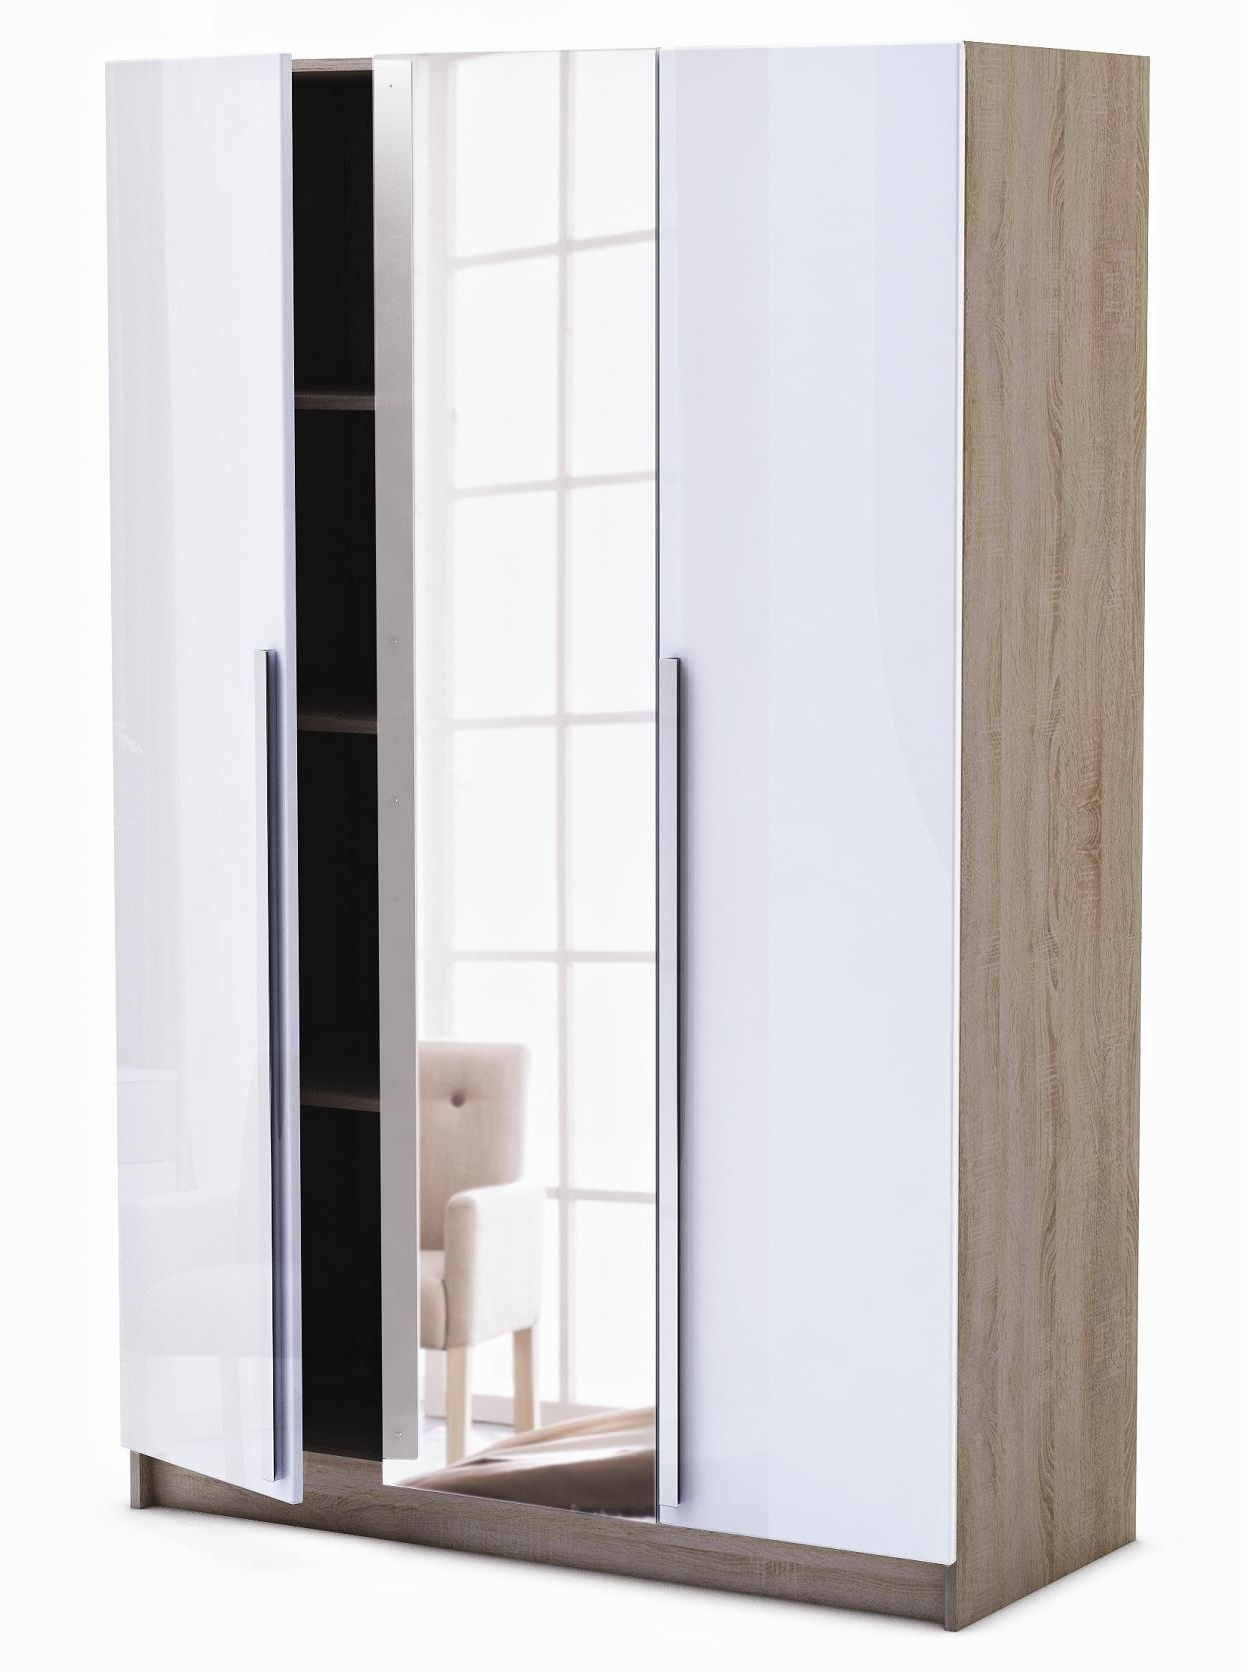 2017 White 3 Door Mirrored Wardrobes Regarding Las Vegas : Andre Victoire: Furniture Delivered And Assembled, (View 1 of 15)